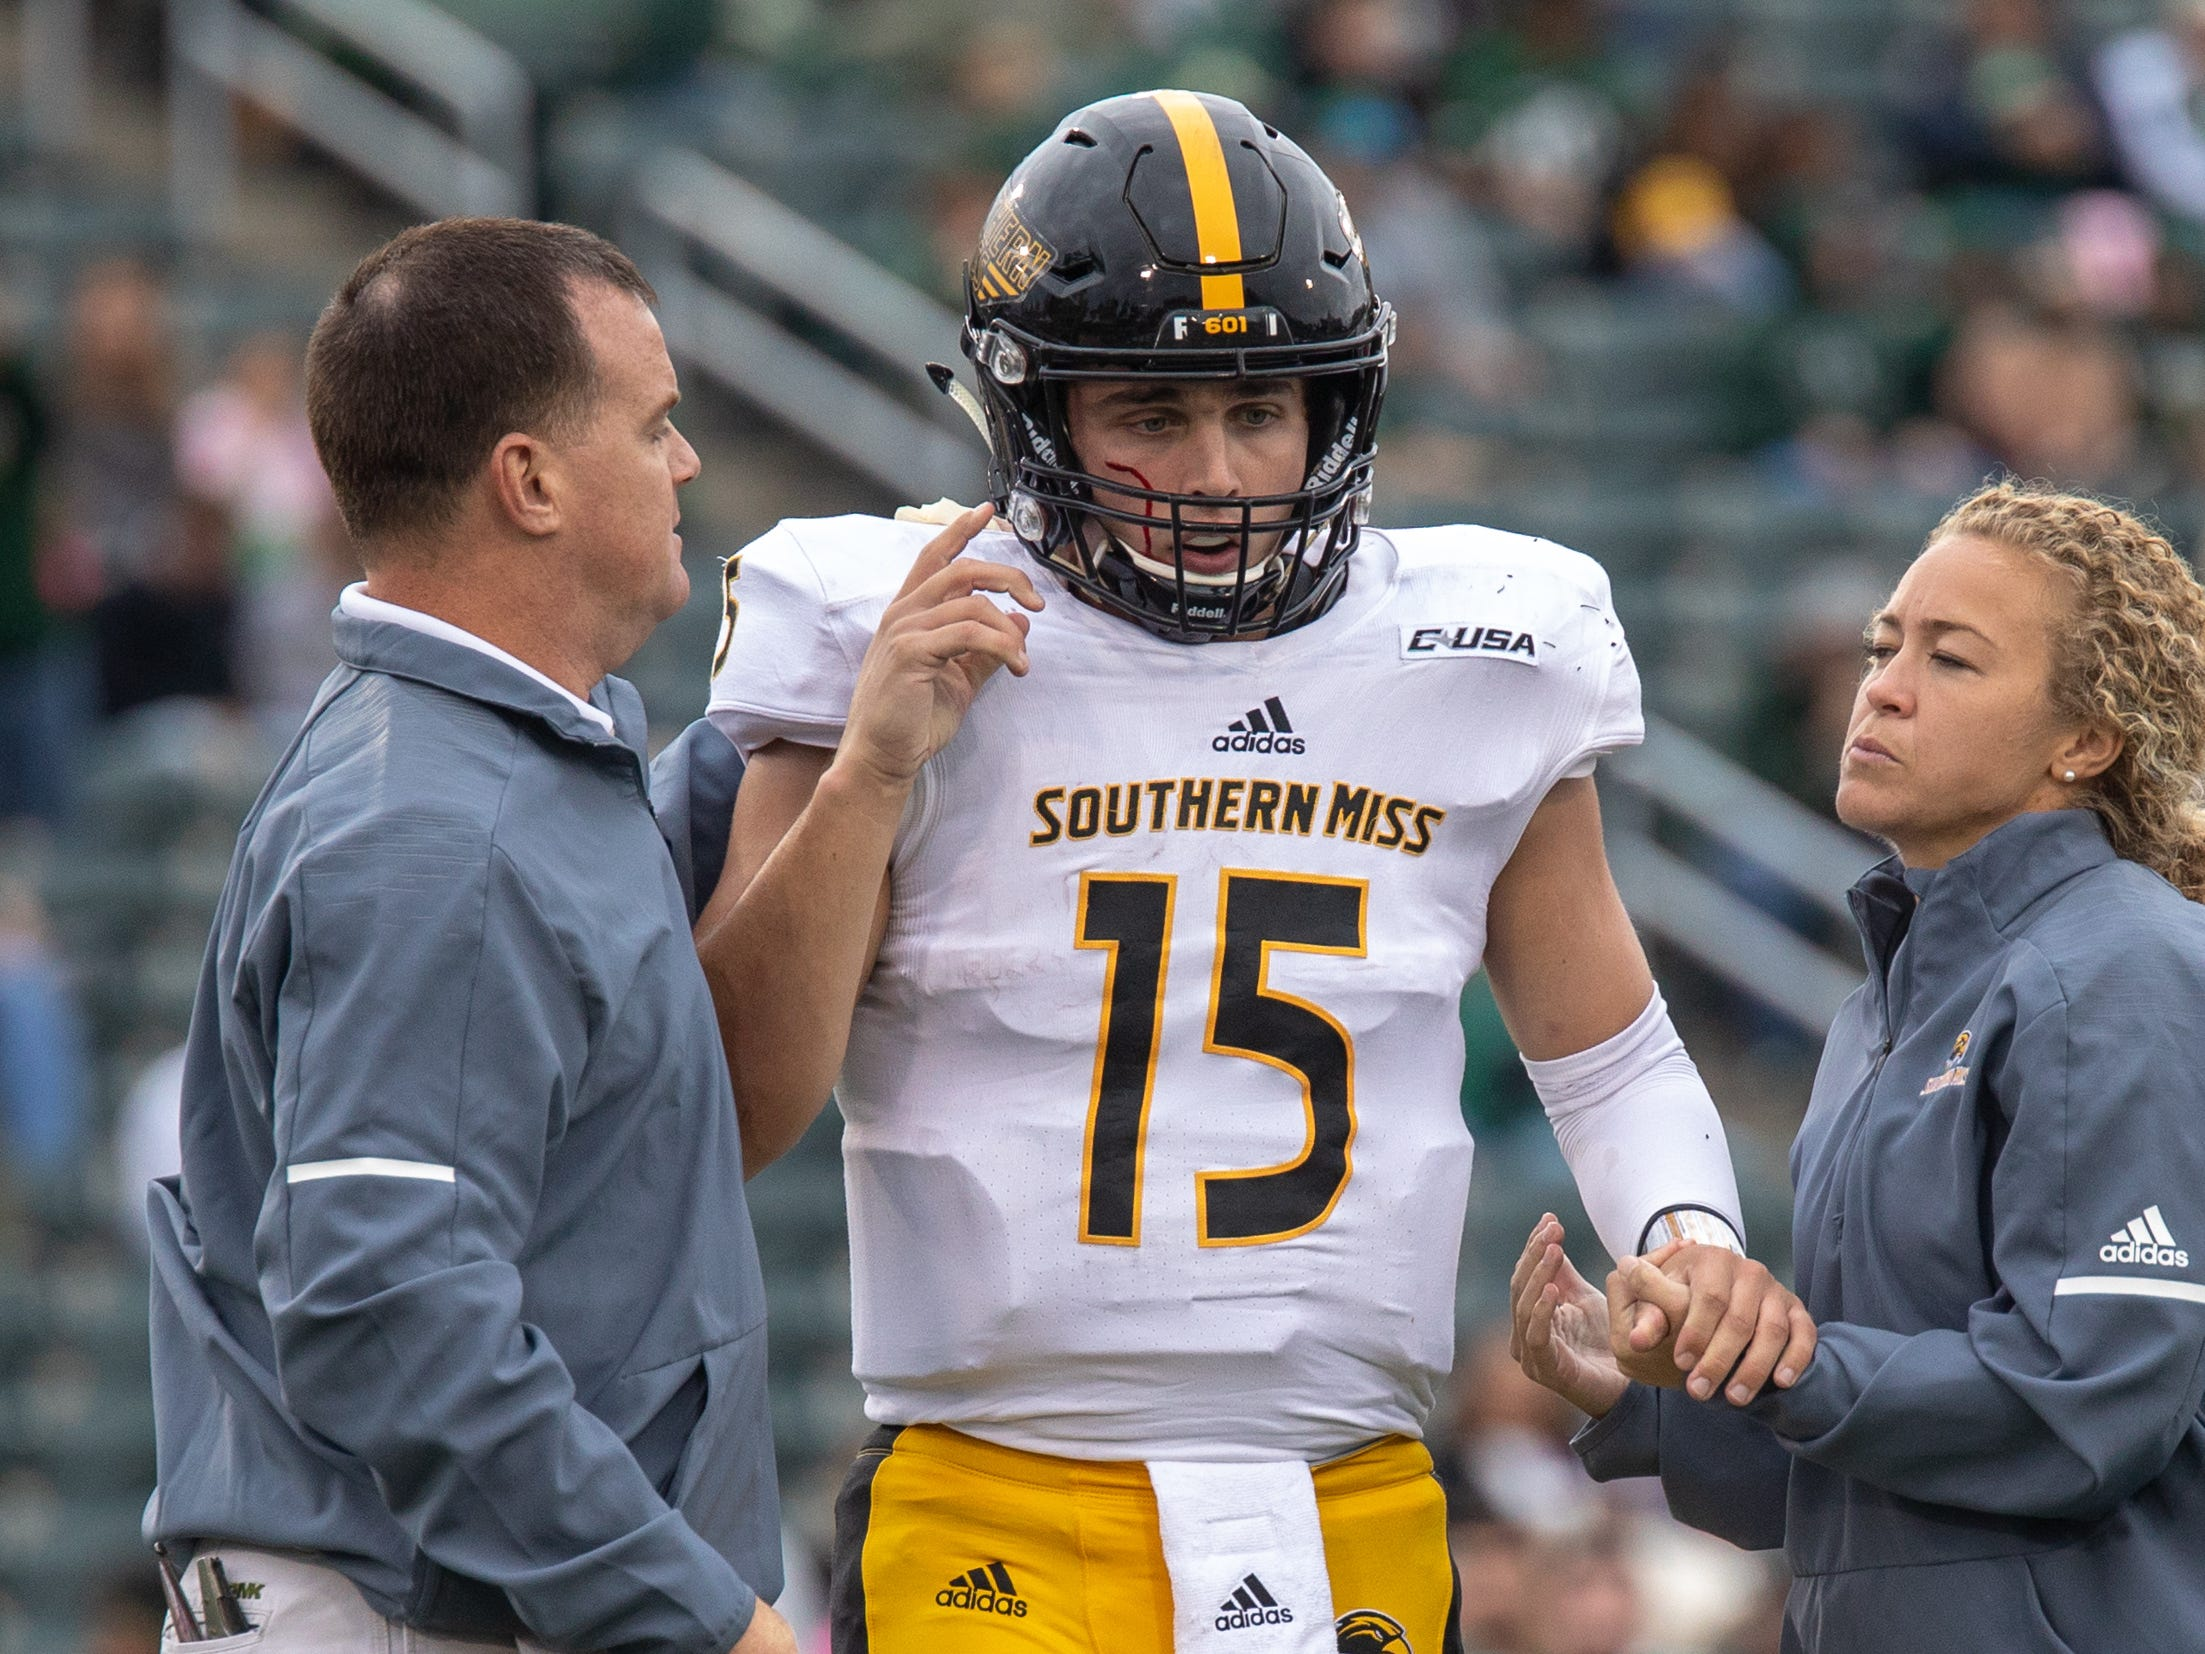 Southern Miss QB Jack Abraham was knocked out of the game early in the 4th quarter. Charlotte 49ers vs Southern Miss football, Saturday October 27th, 2018